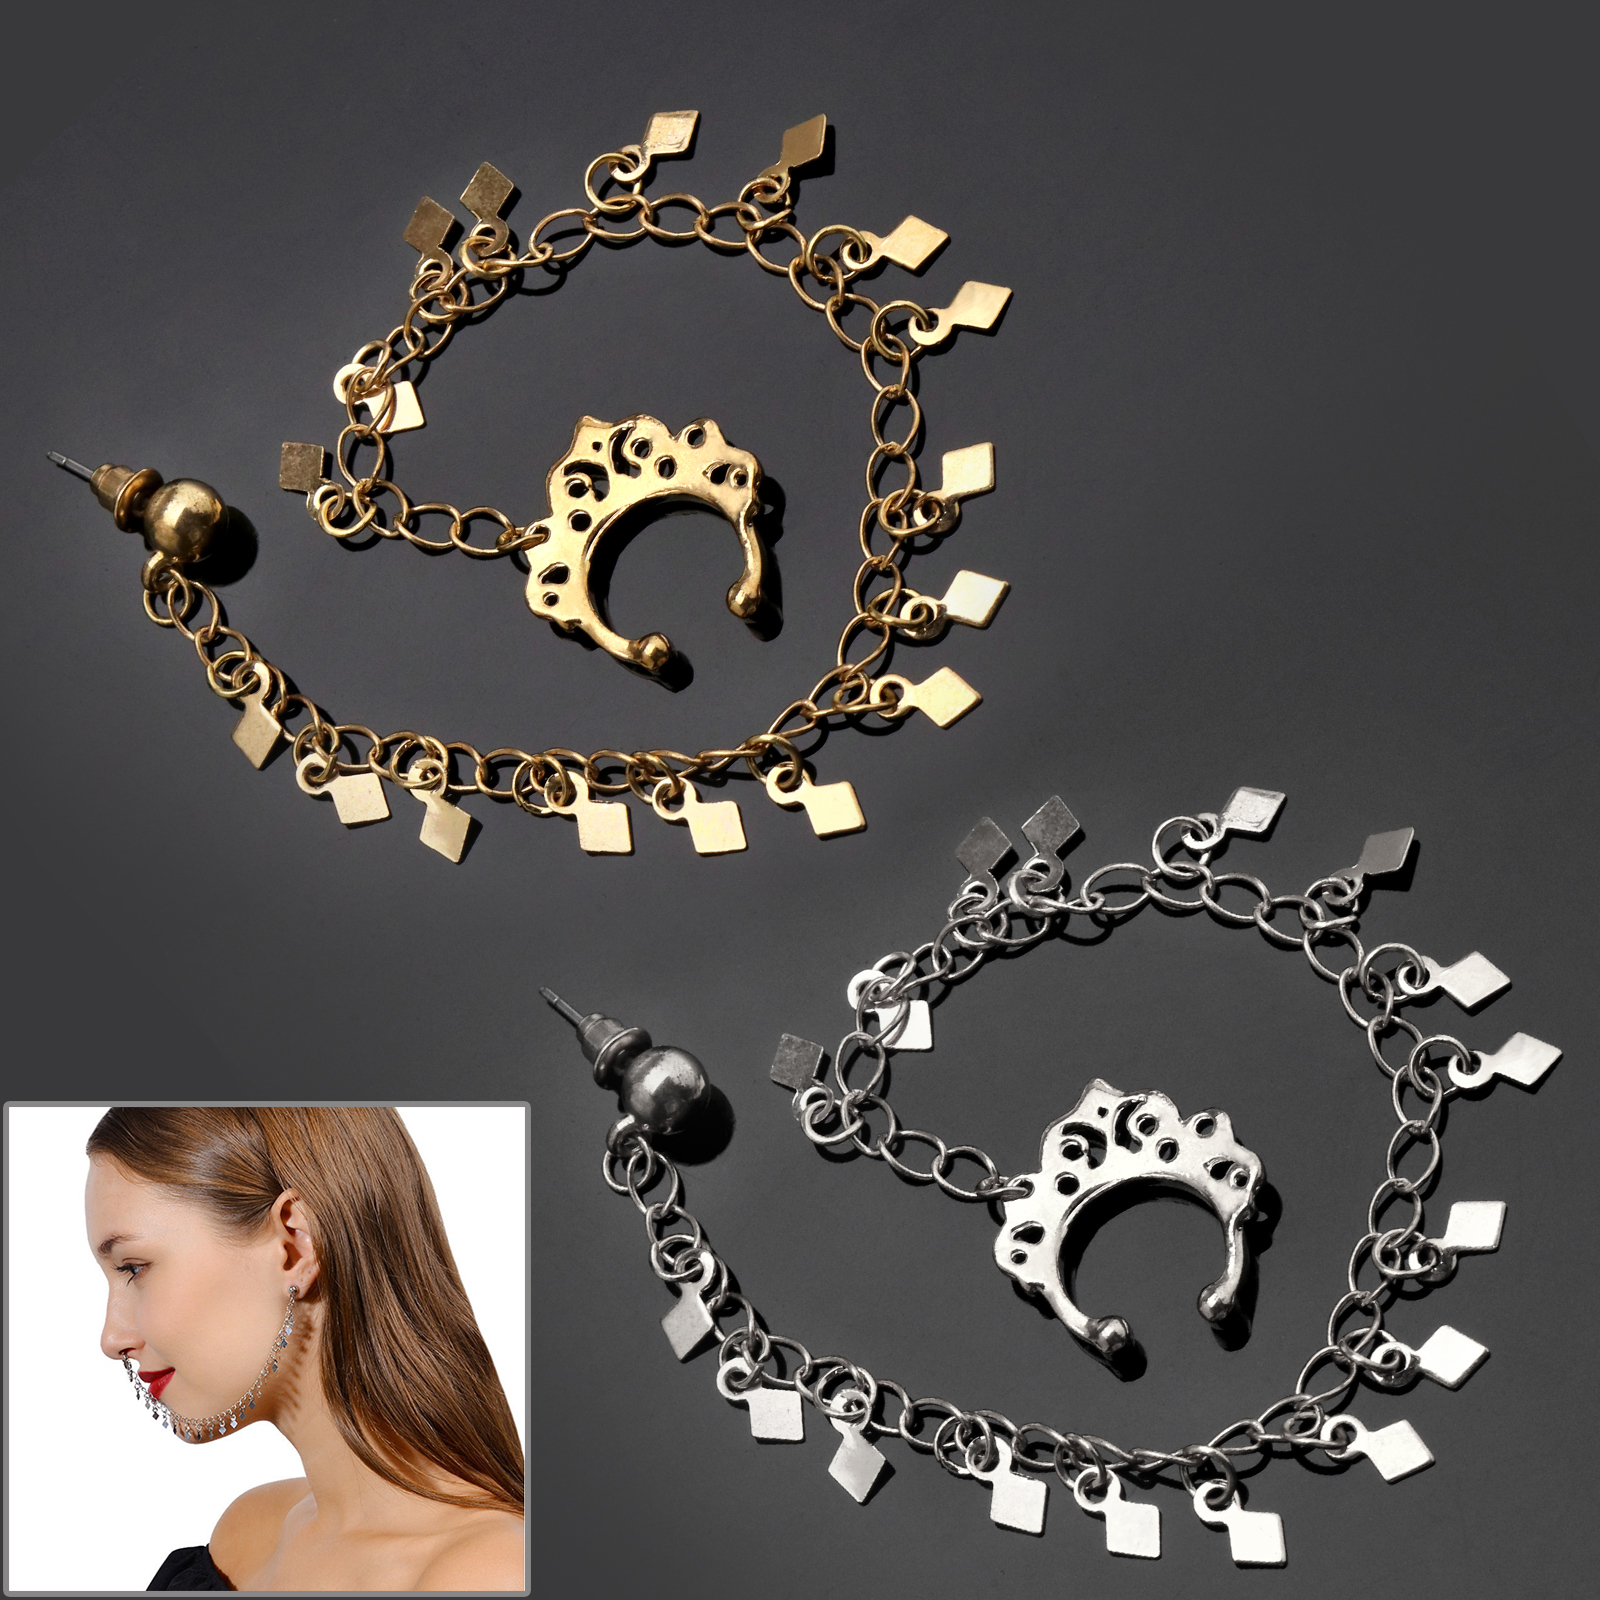 Indian NATH NOSE RING CHAIN BRIDAL PARTY JEWELLERY Fashion Beauty Accessory